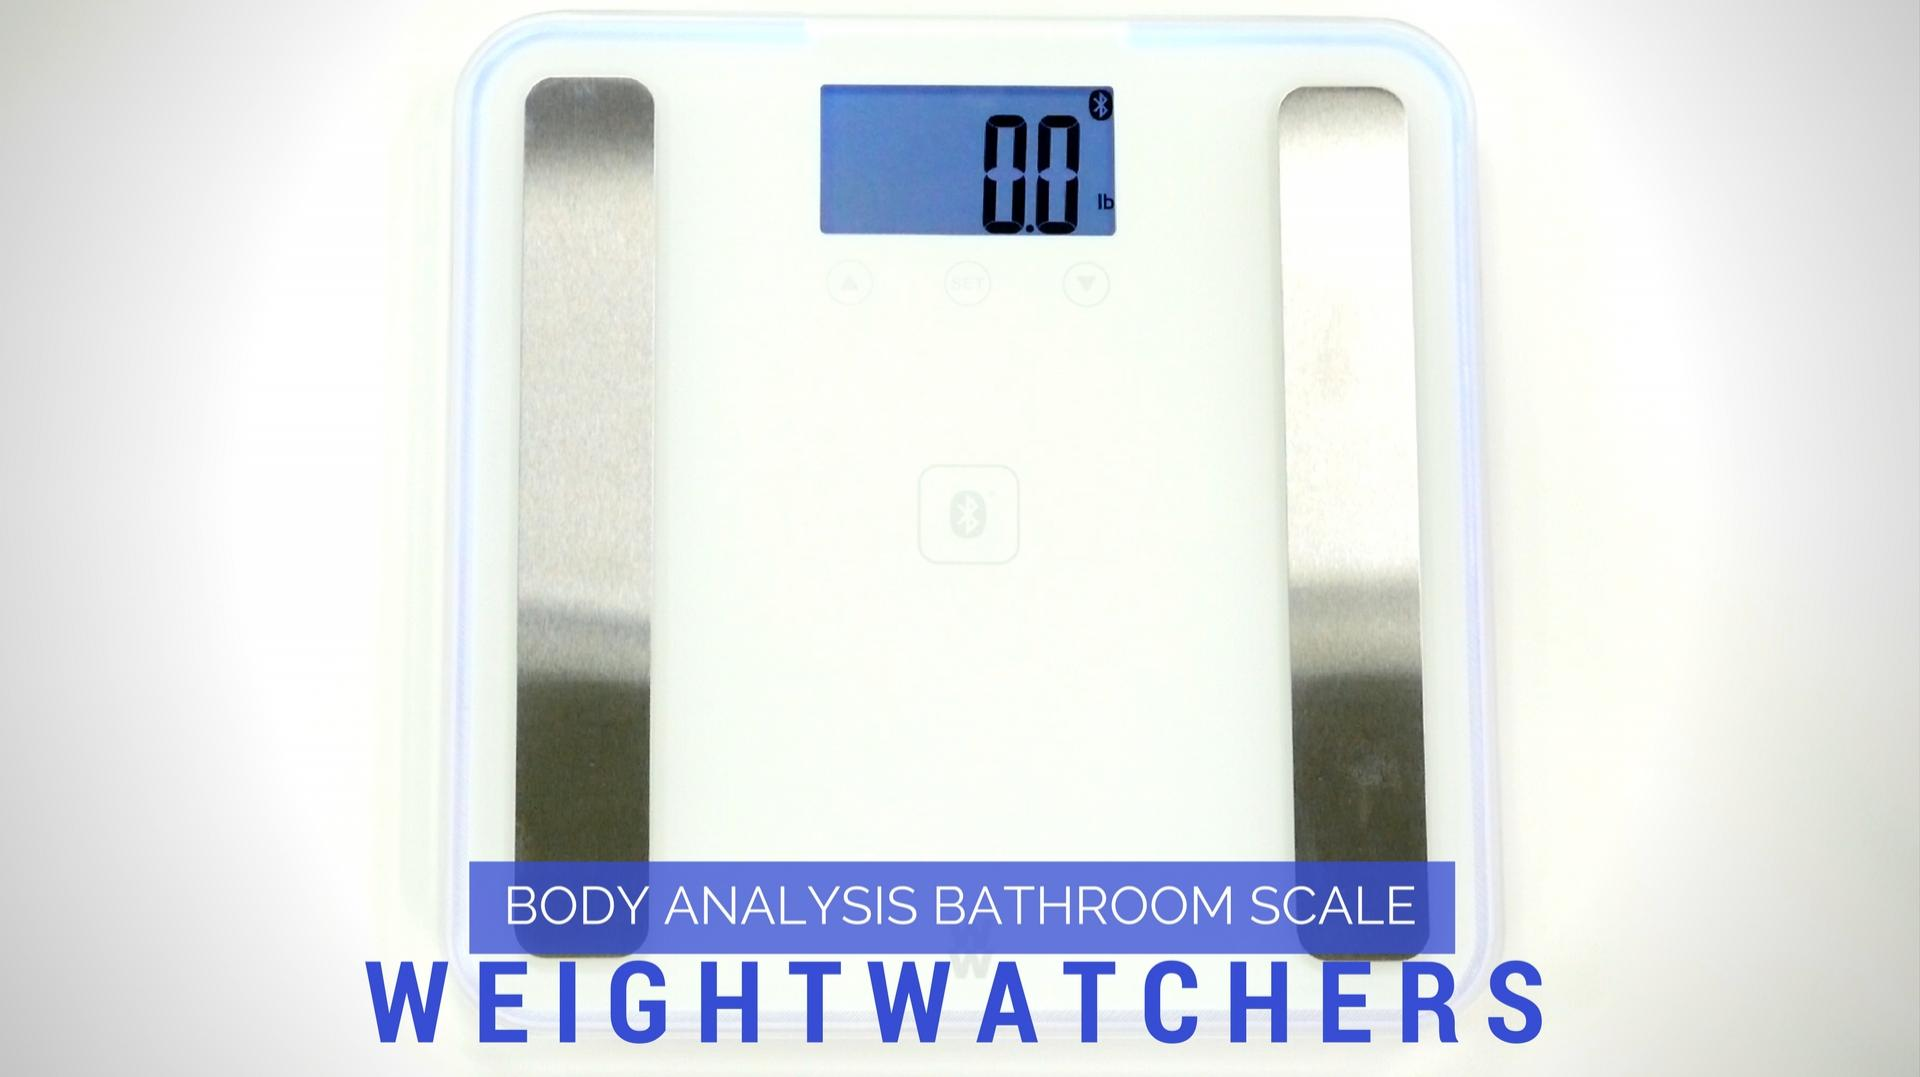 Bed Bath Beyond Tv Watch Weight Watchers Body Ysis Bathroom Scale